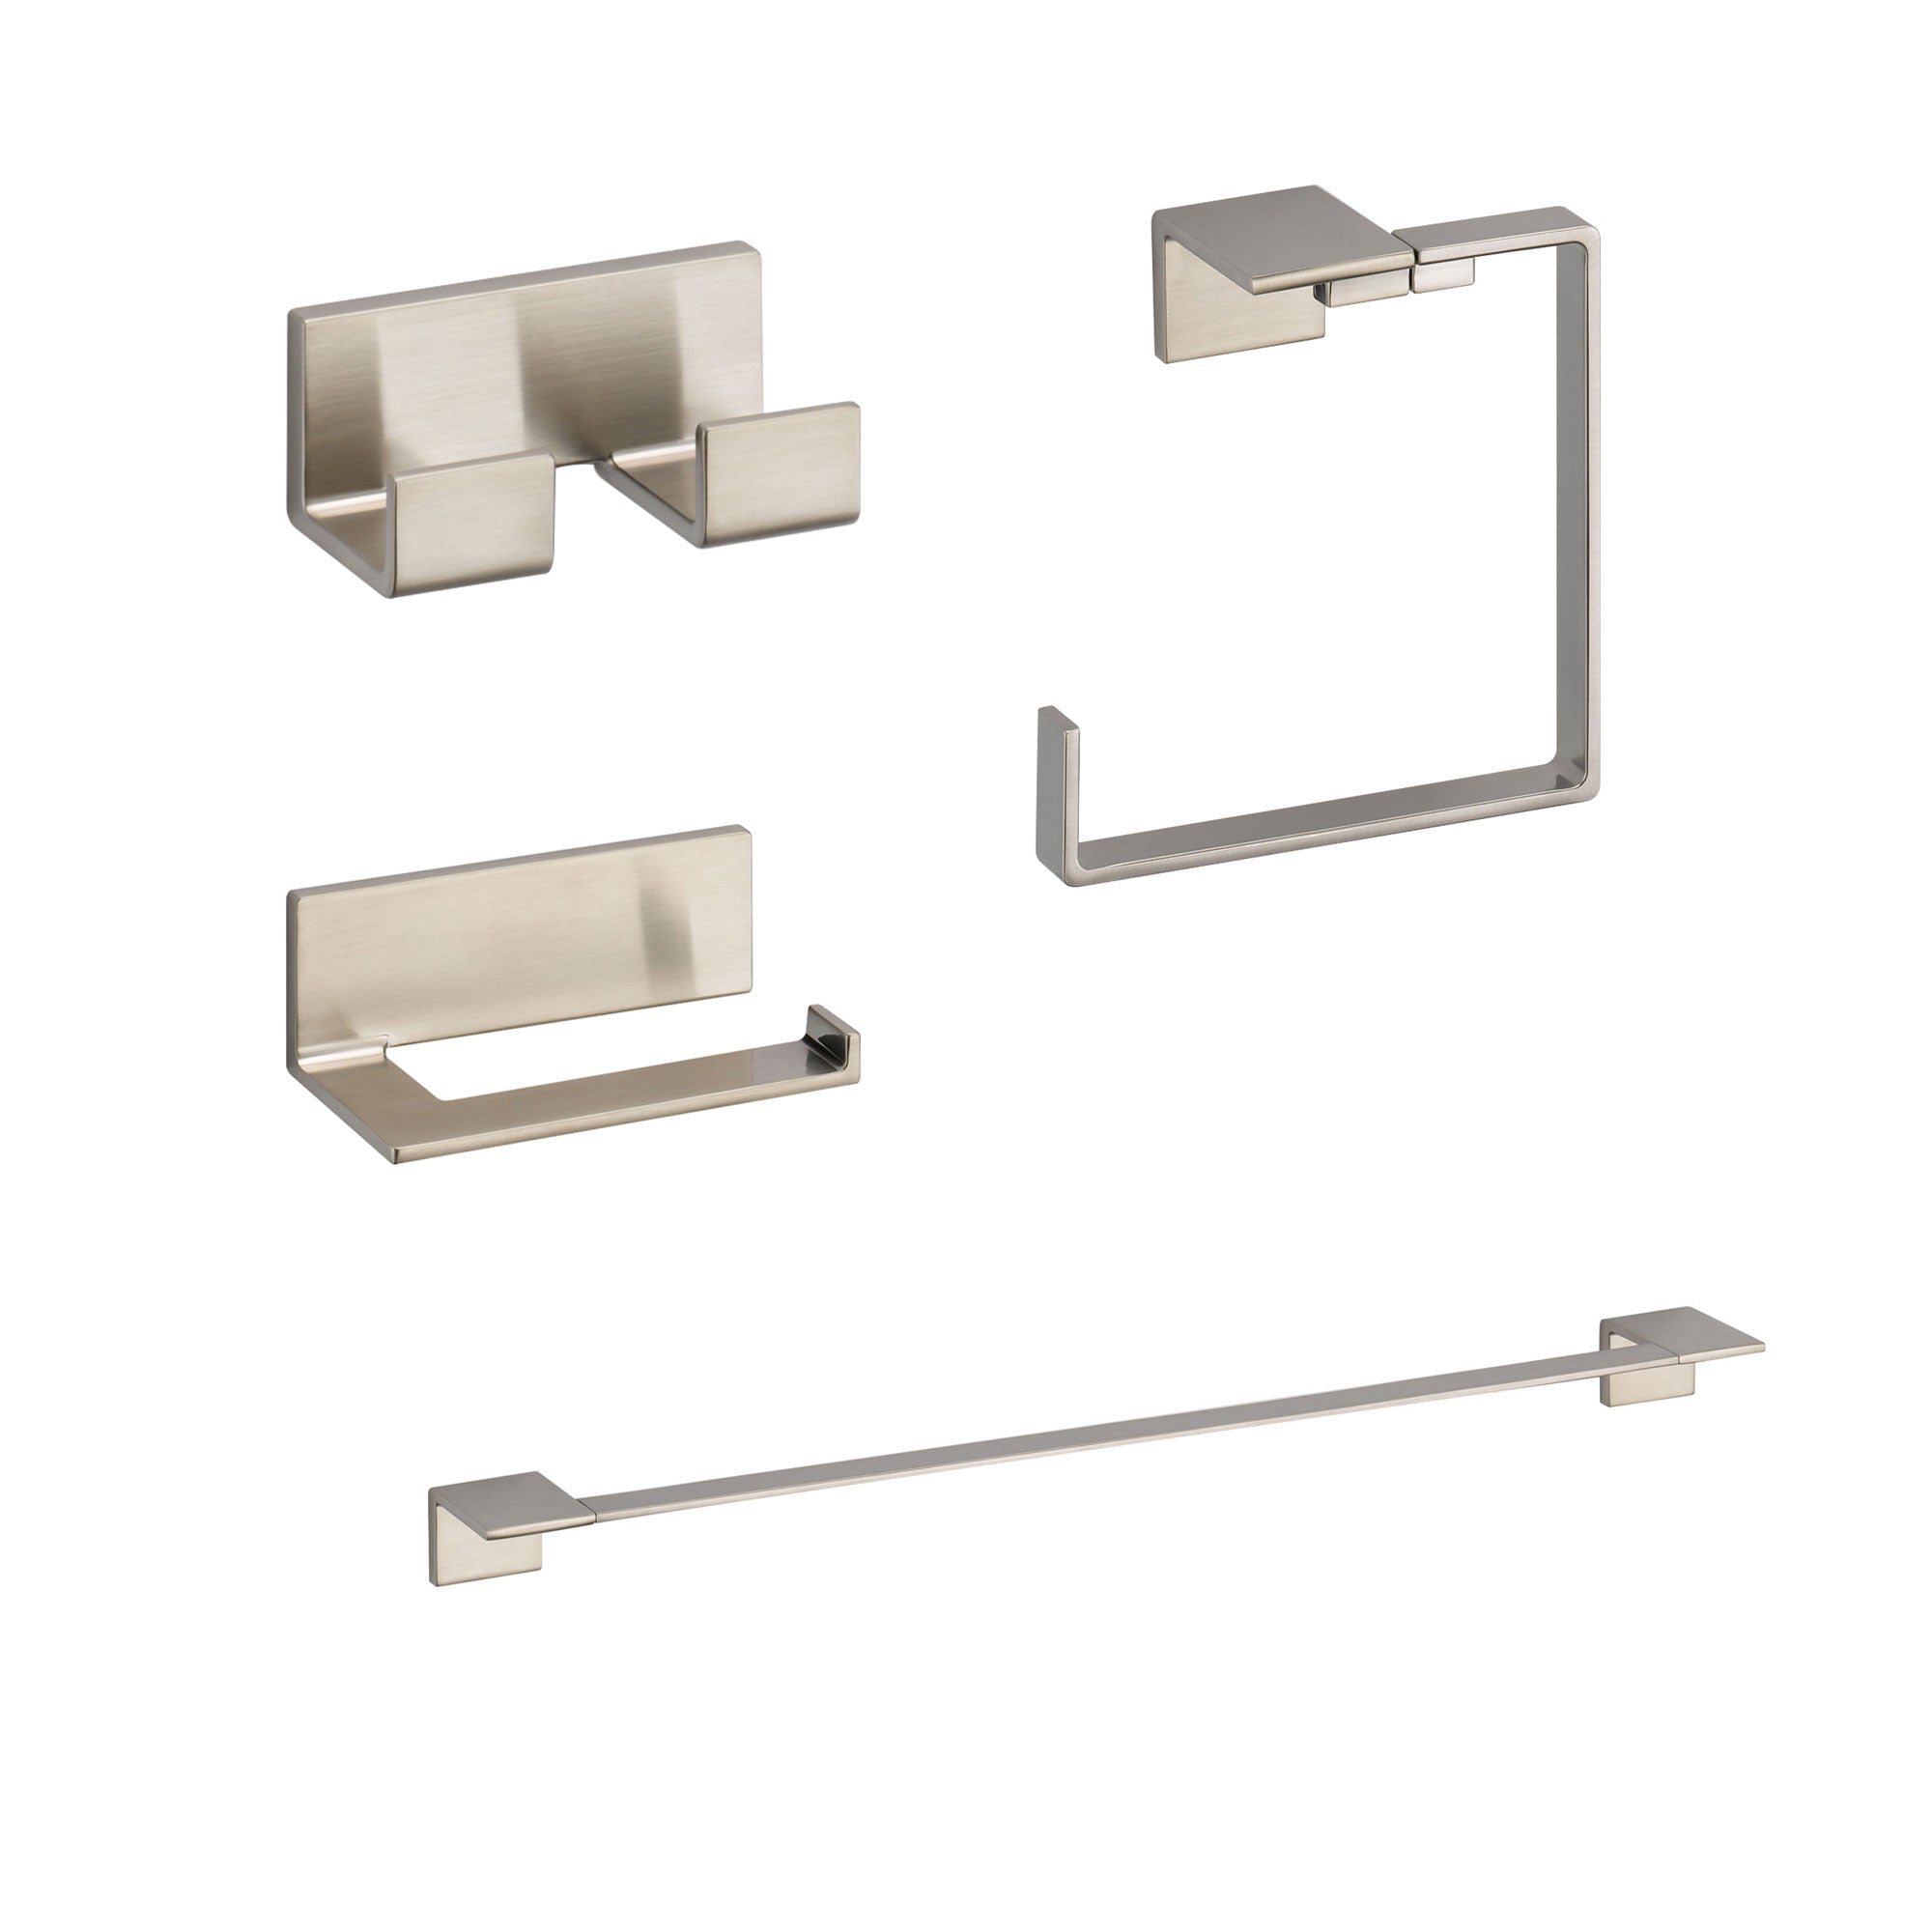 "Delta Vero Stainless Steel Finish STANDARD Bathroom Accessory Set: 24"" Towel Bar, Toilet Paper Holder, Double Robe Hook, and Towel Ring D10058AP"